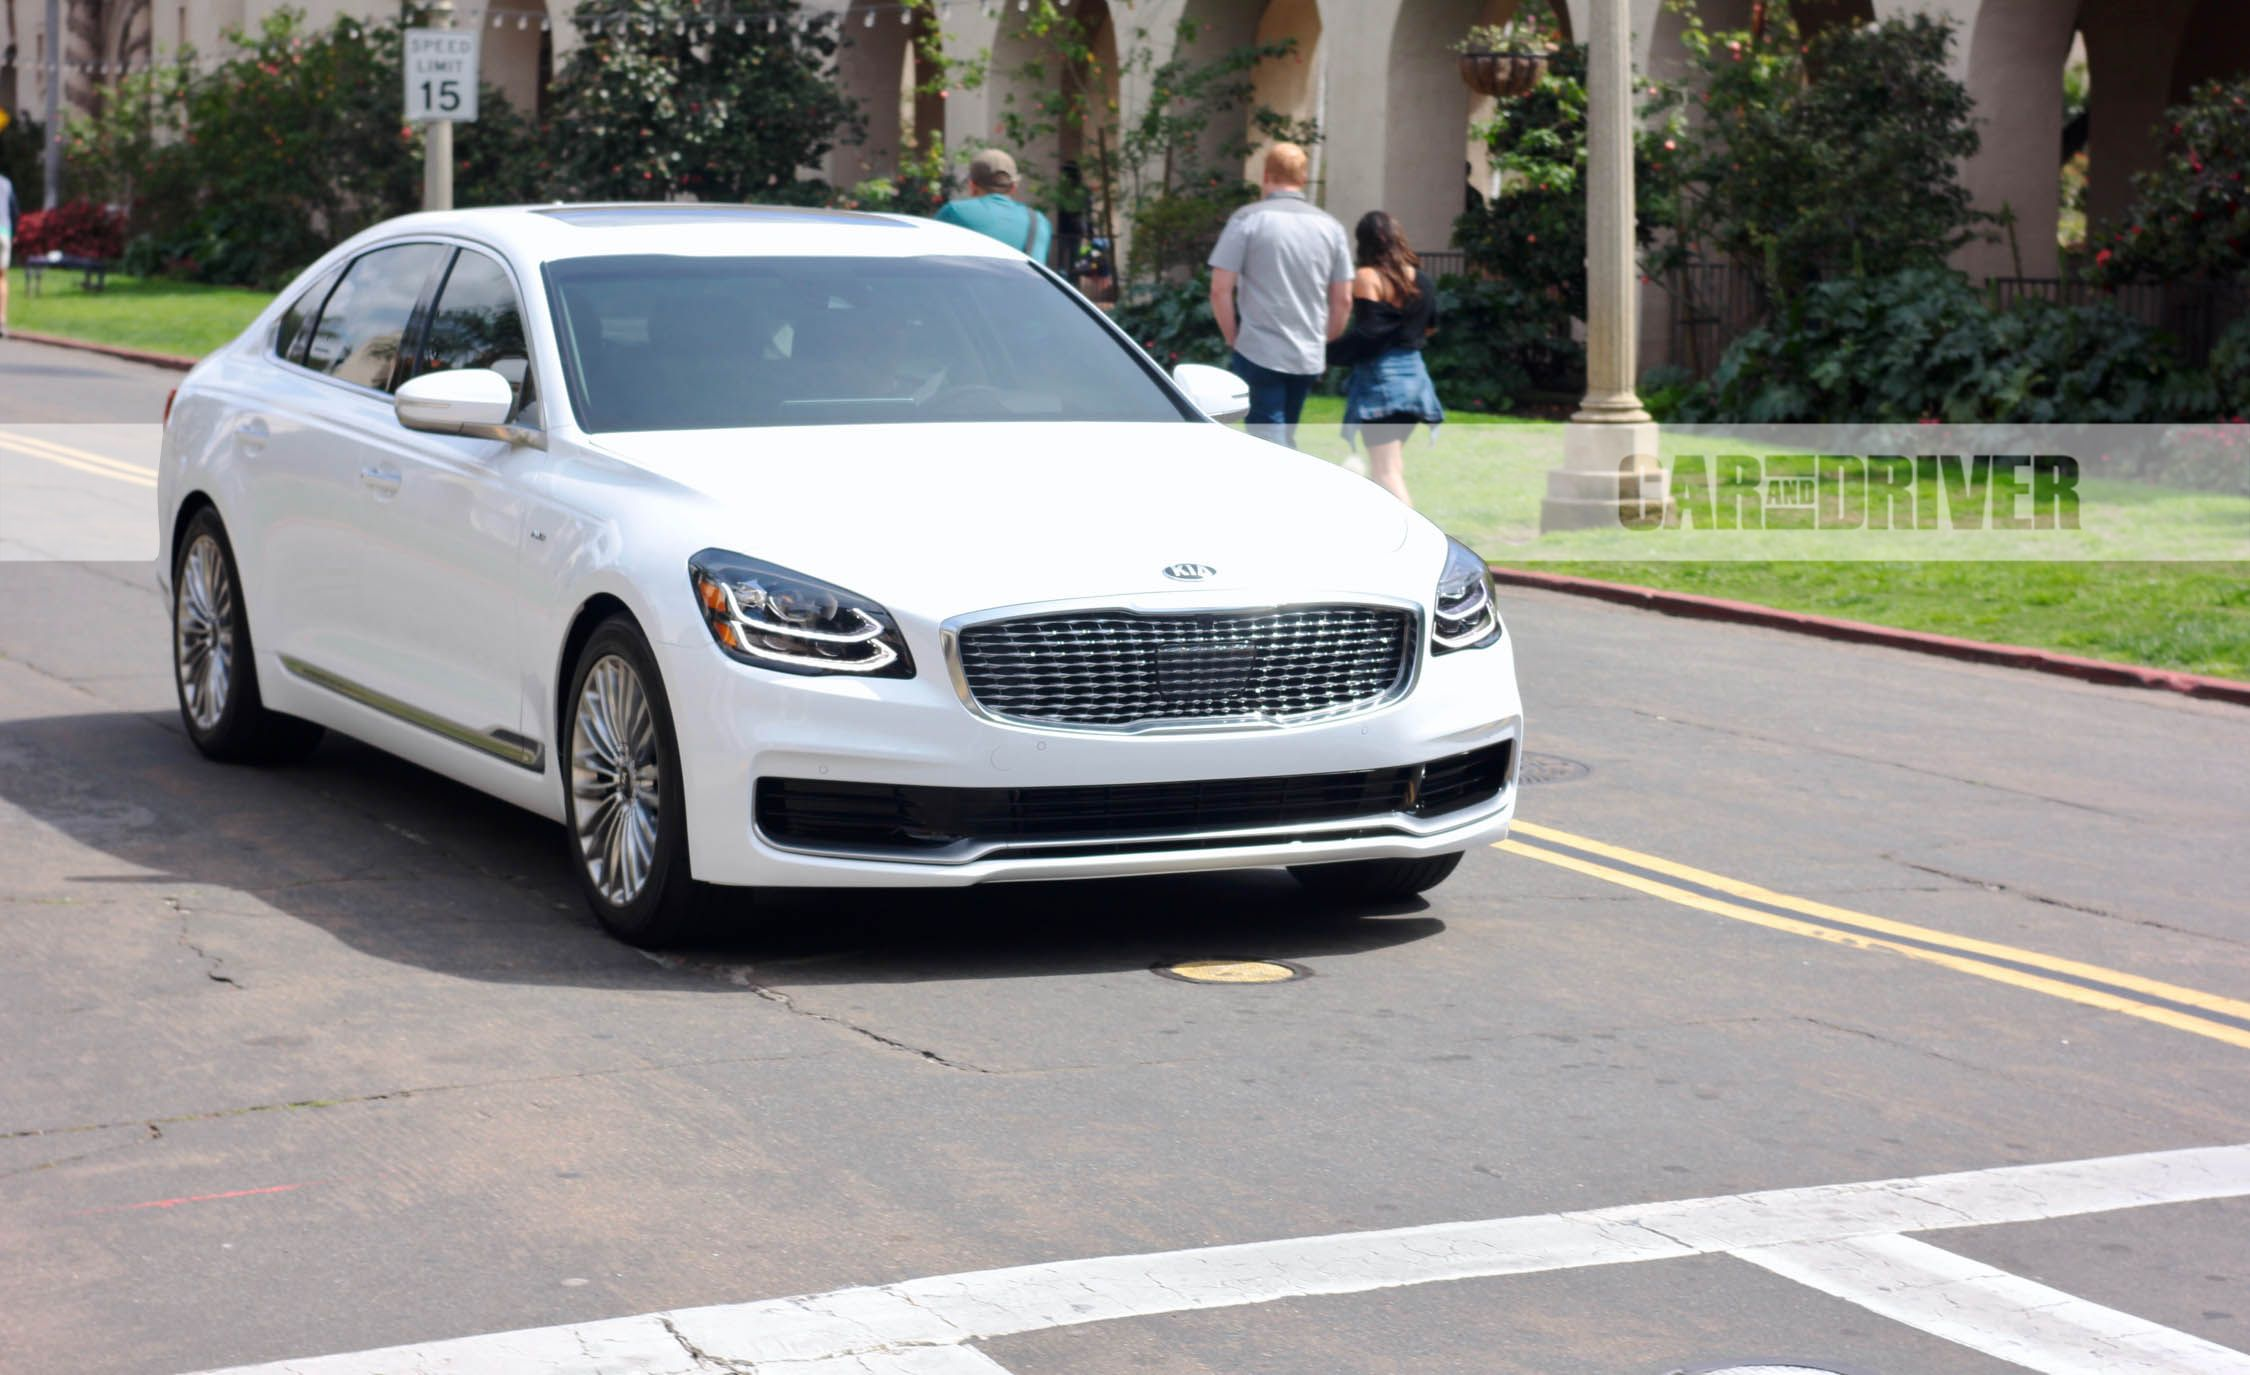 Kia K9 Price >> 2019 Kia K900 First Pictures: It's Back and Better-Looking | News | Car and Driver